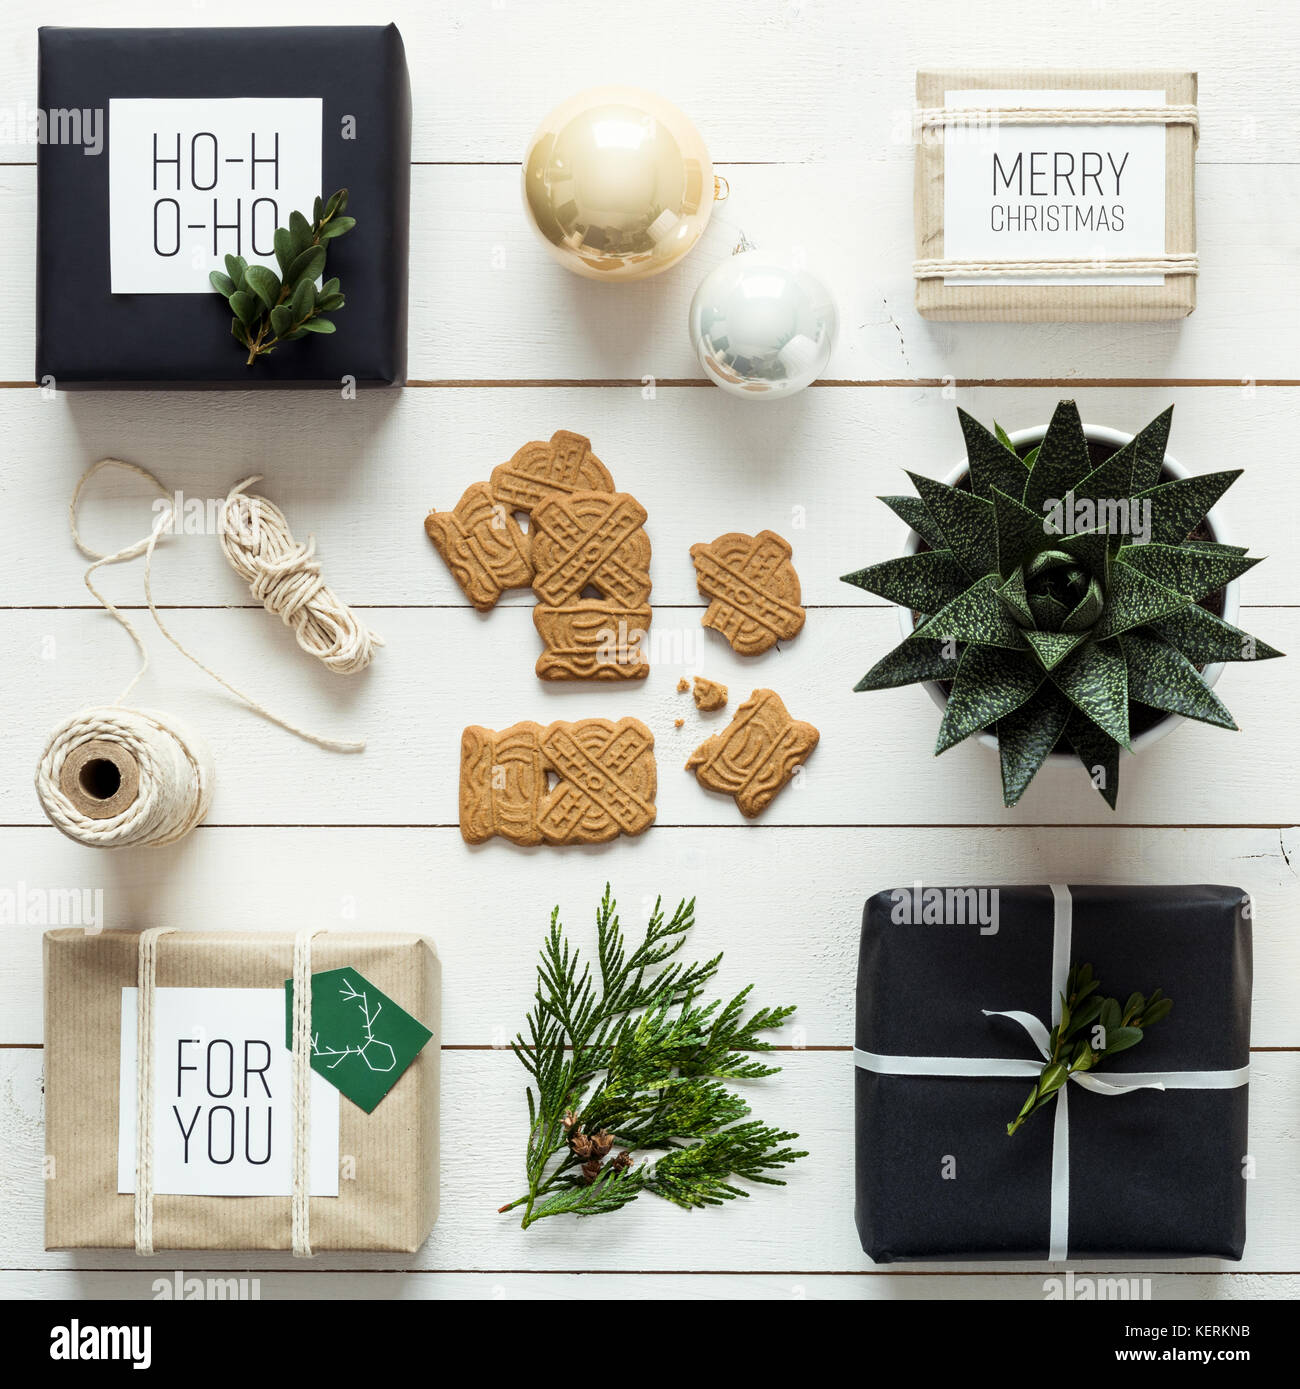 Elegant nordic retro christmas, wrapping station, desk view from above, DIY xmas concept - Stock Image